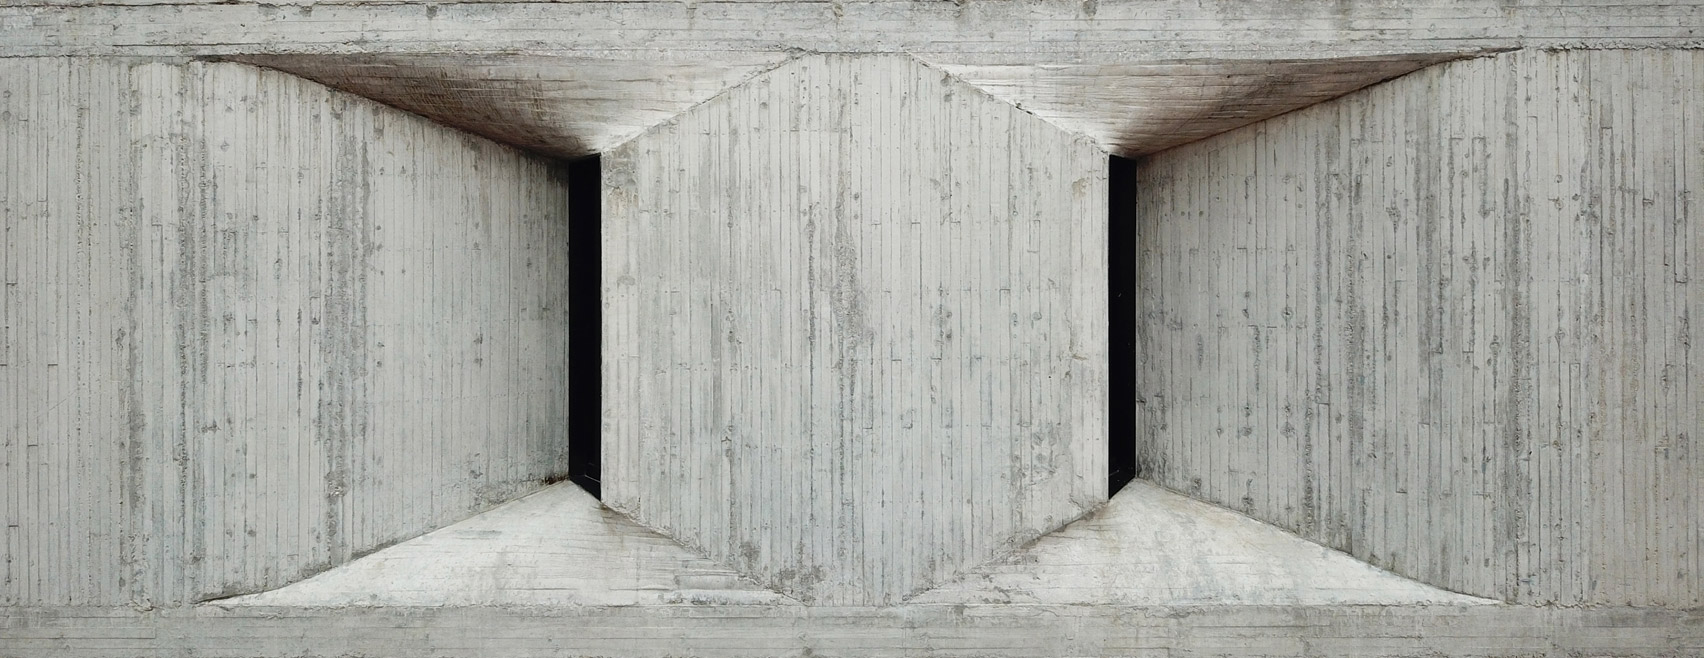 Board-marked fair faced concrete wall in Mexico